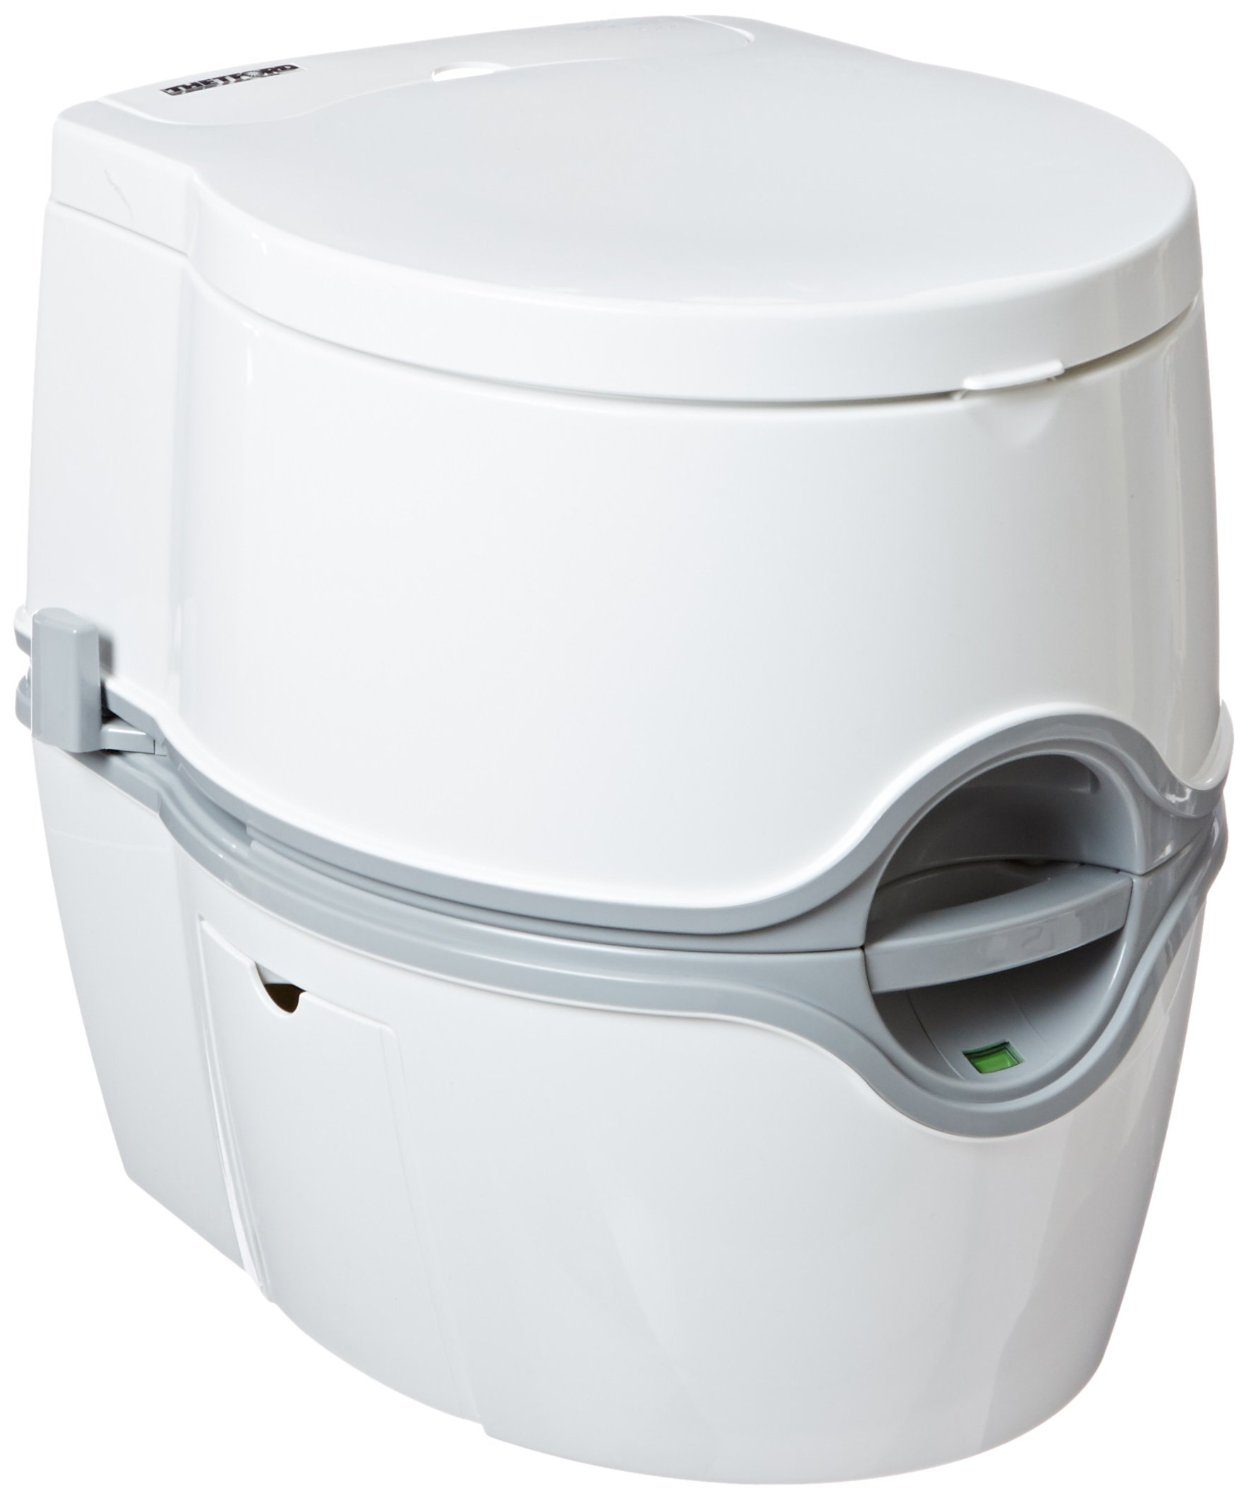 Best toilet on the market reviews - Thetford Porta Potti 550e